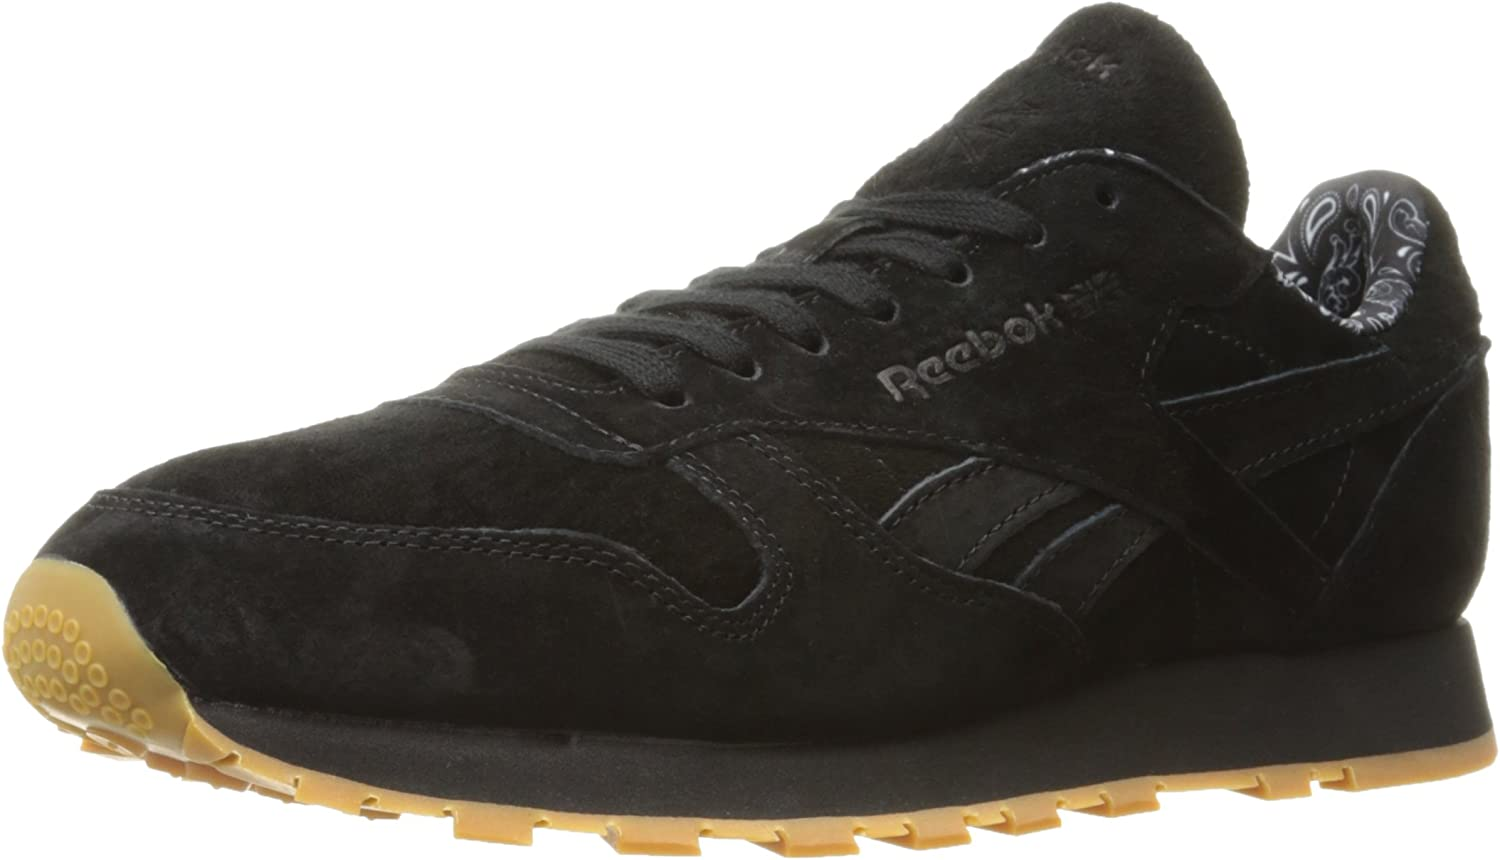 Reebok Men's Classic Leather TDC Fashion Sneaker